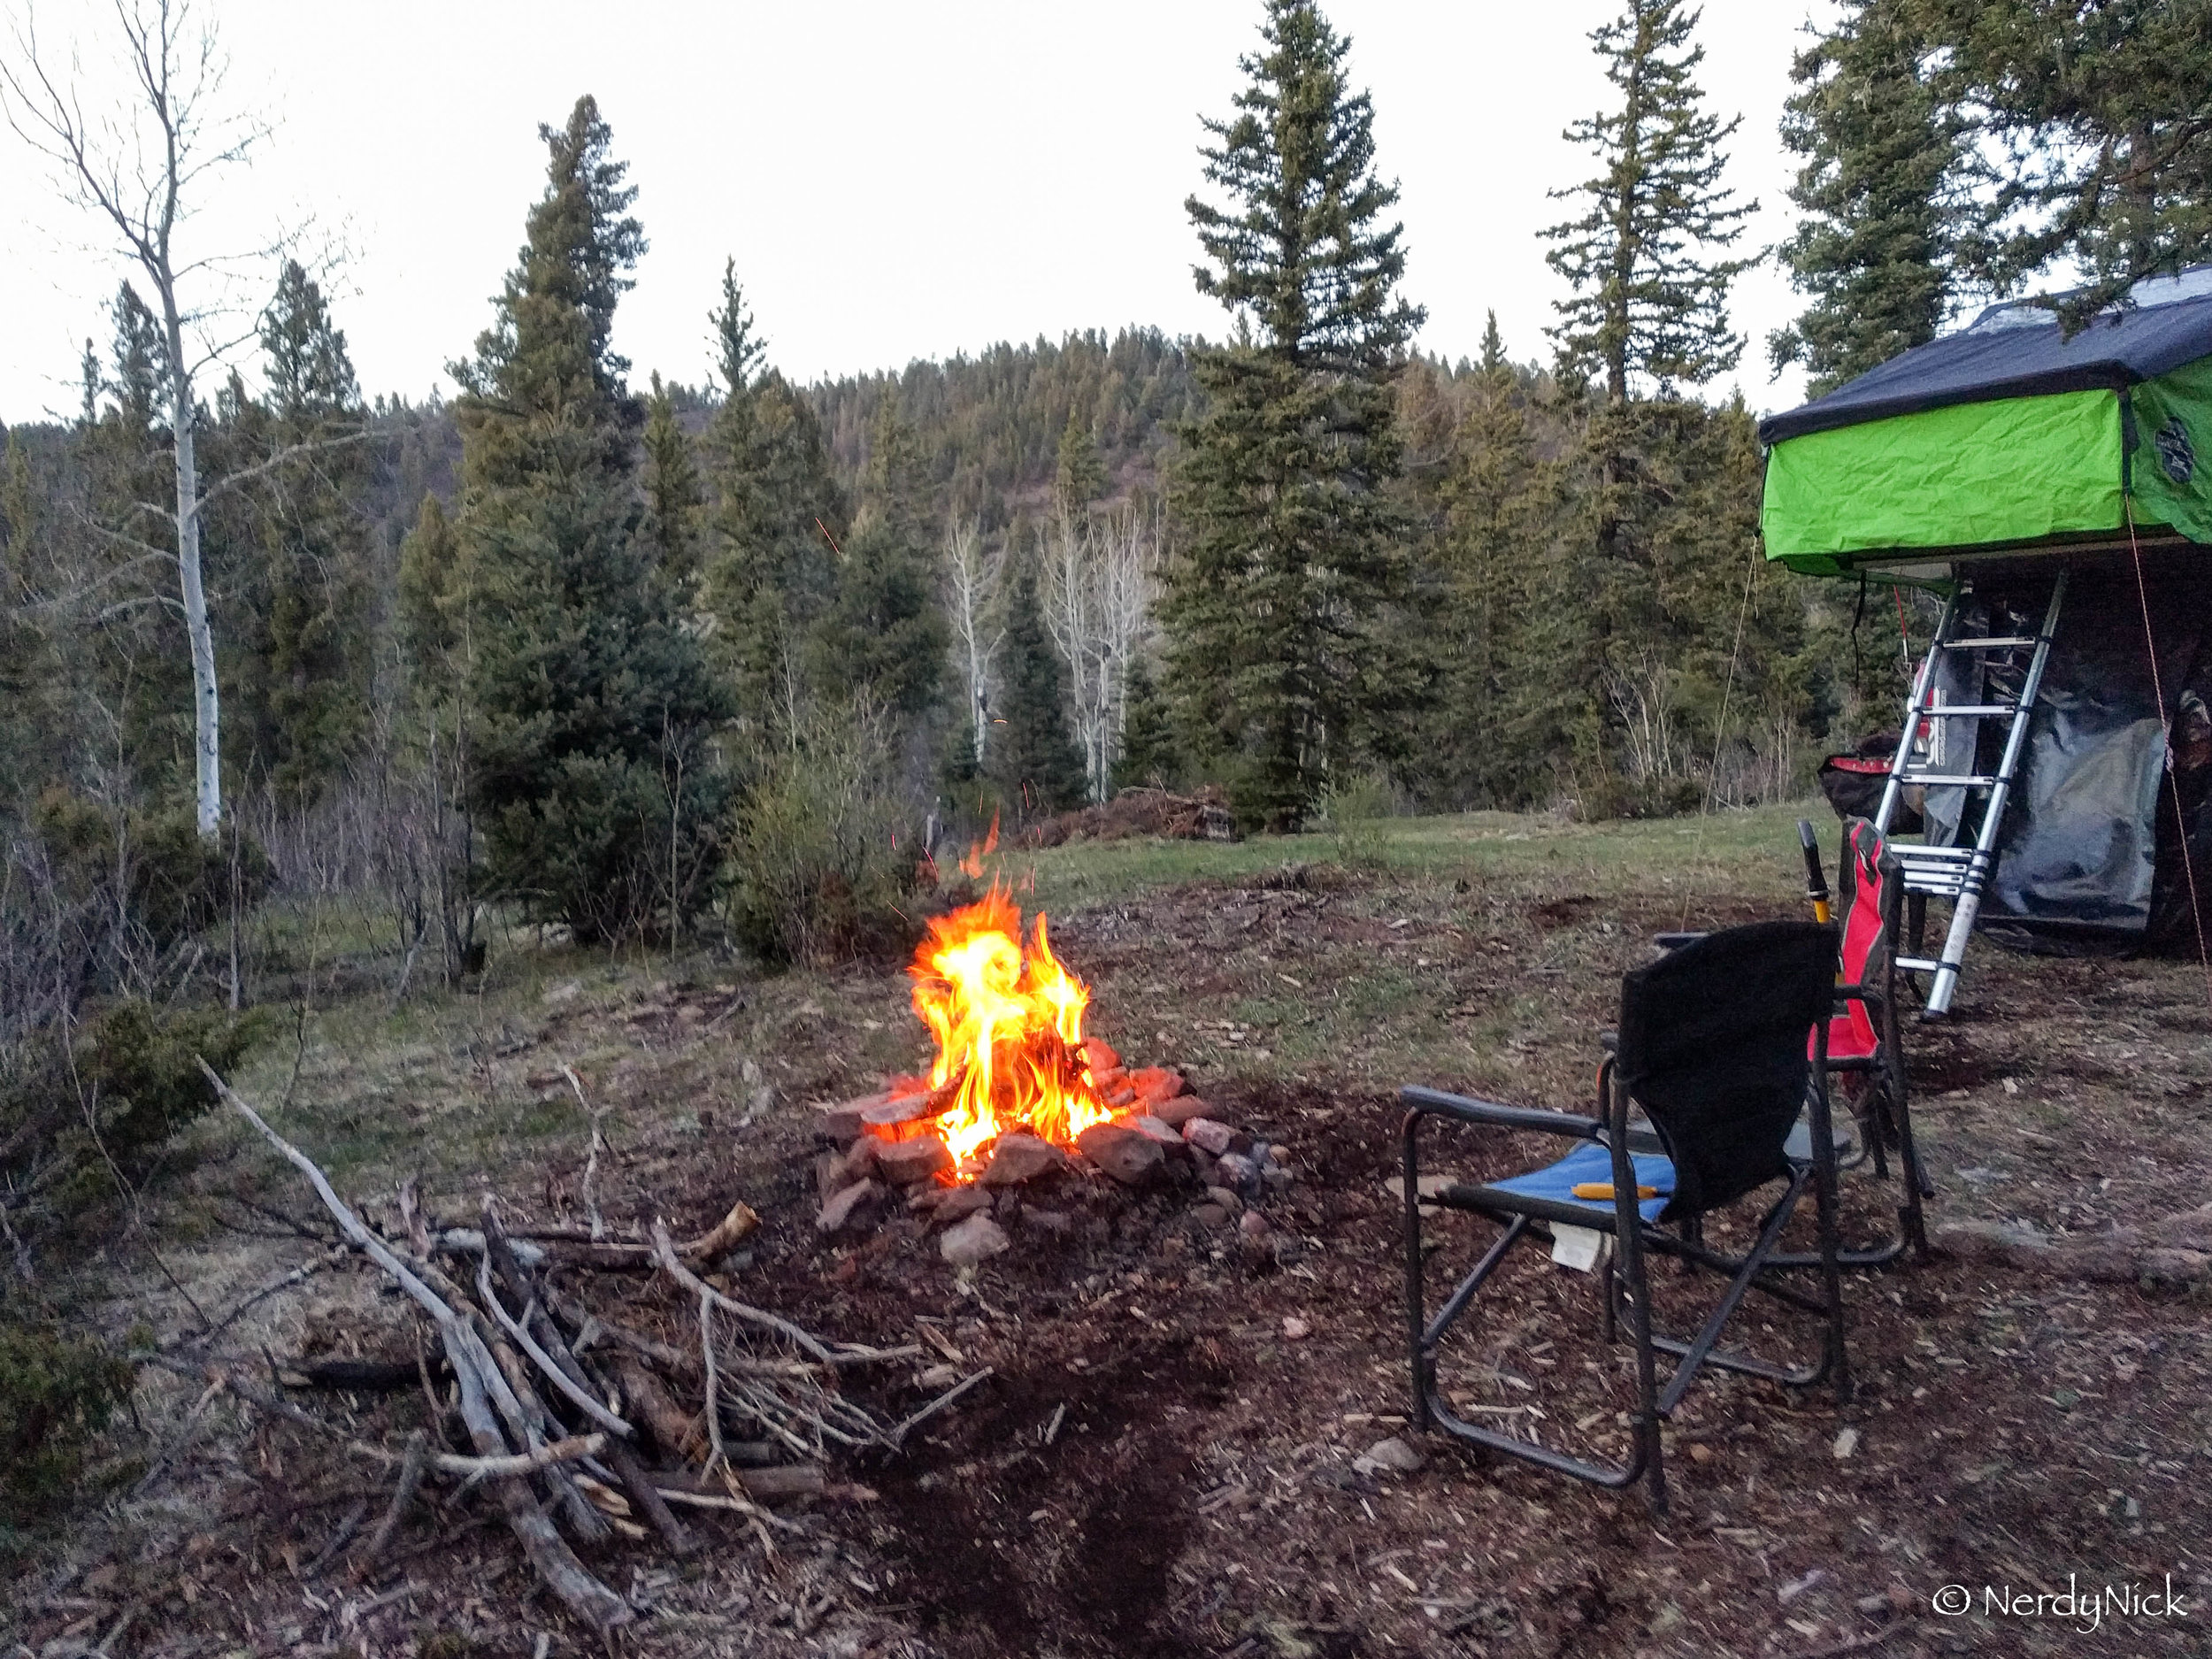 Our camp for the night in the Sangre de Cristo Mountains